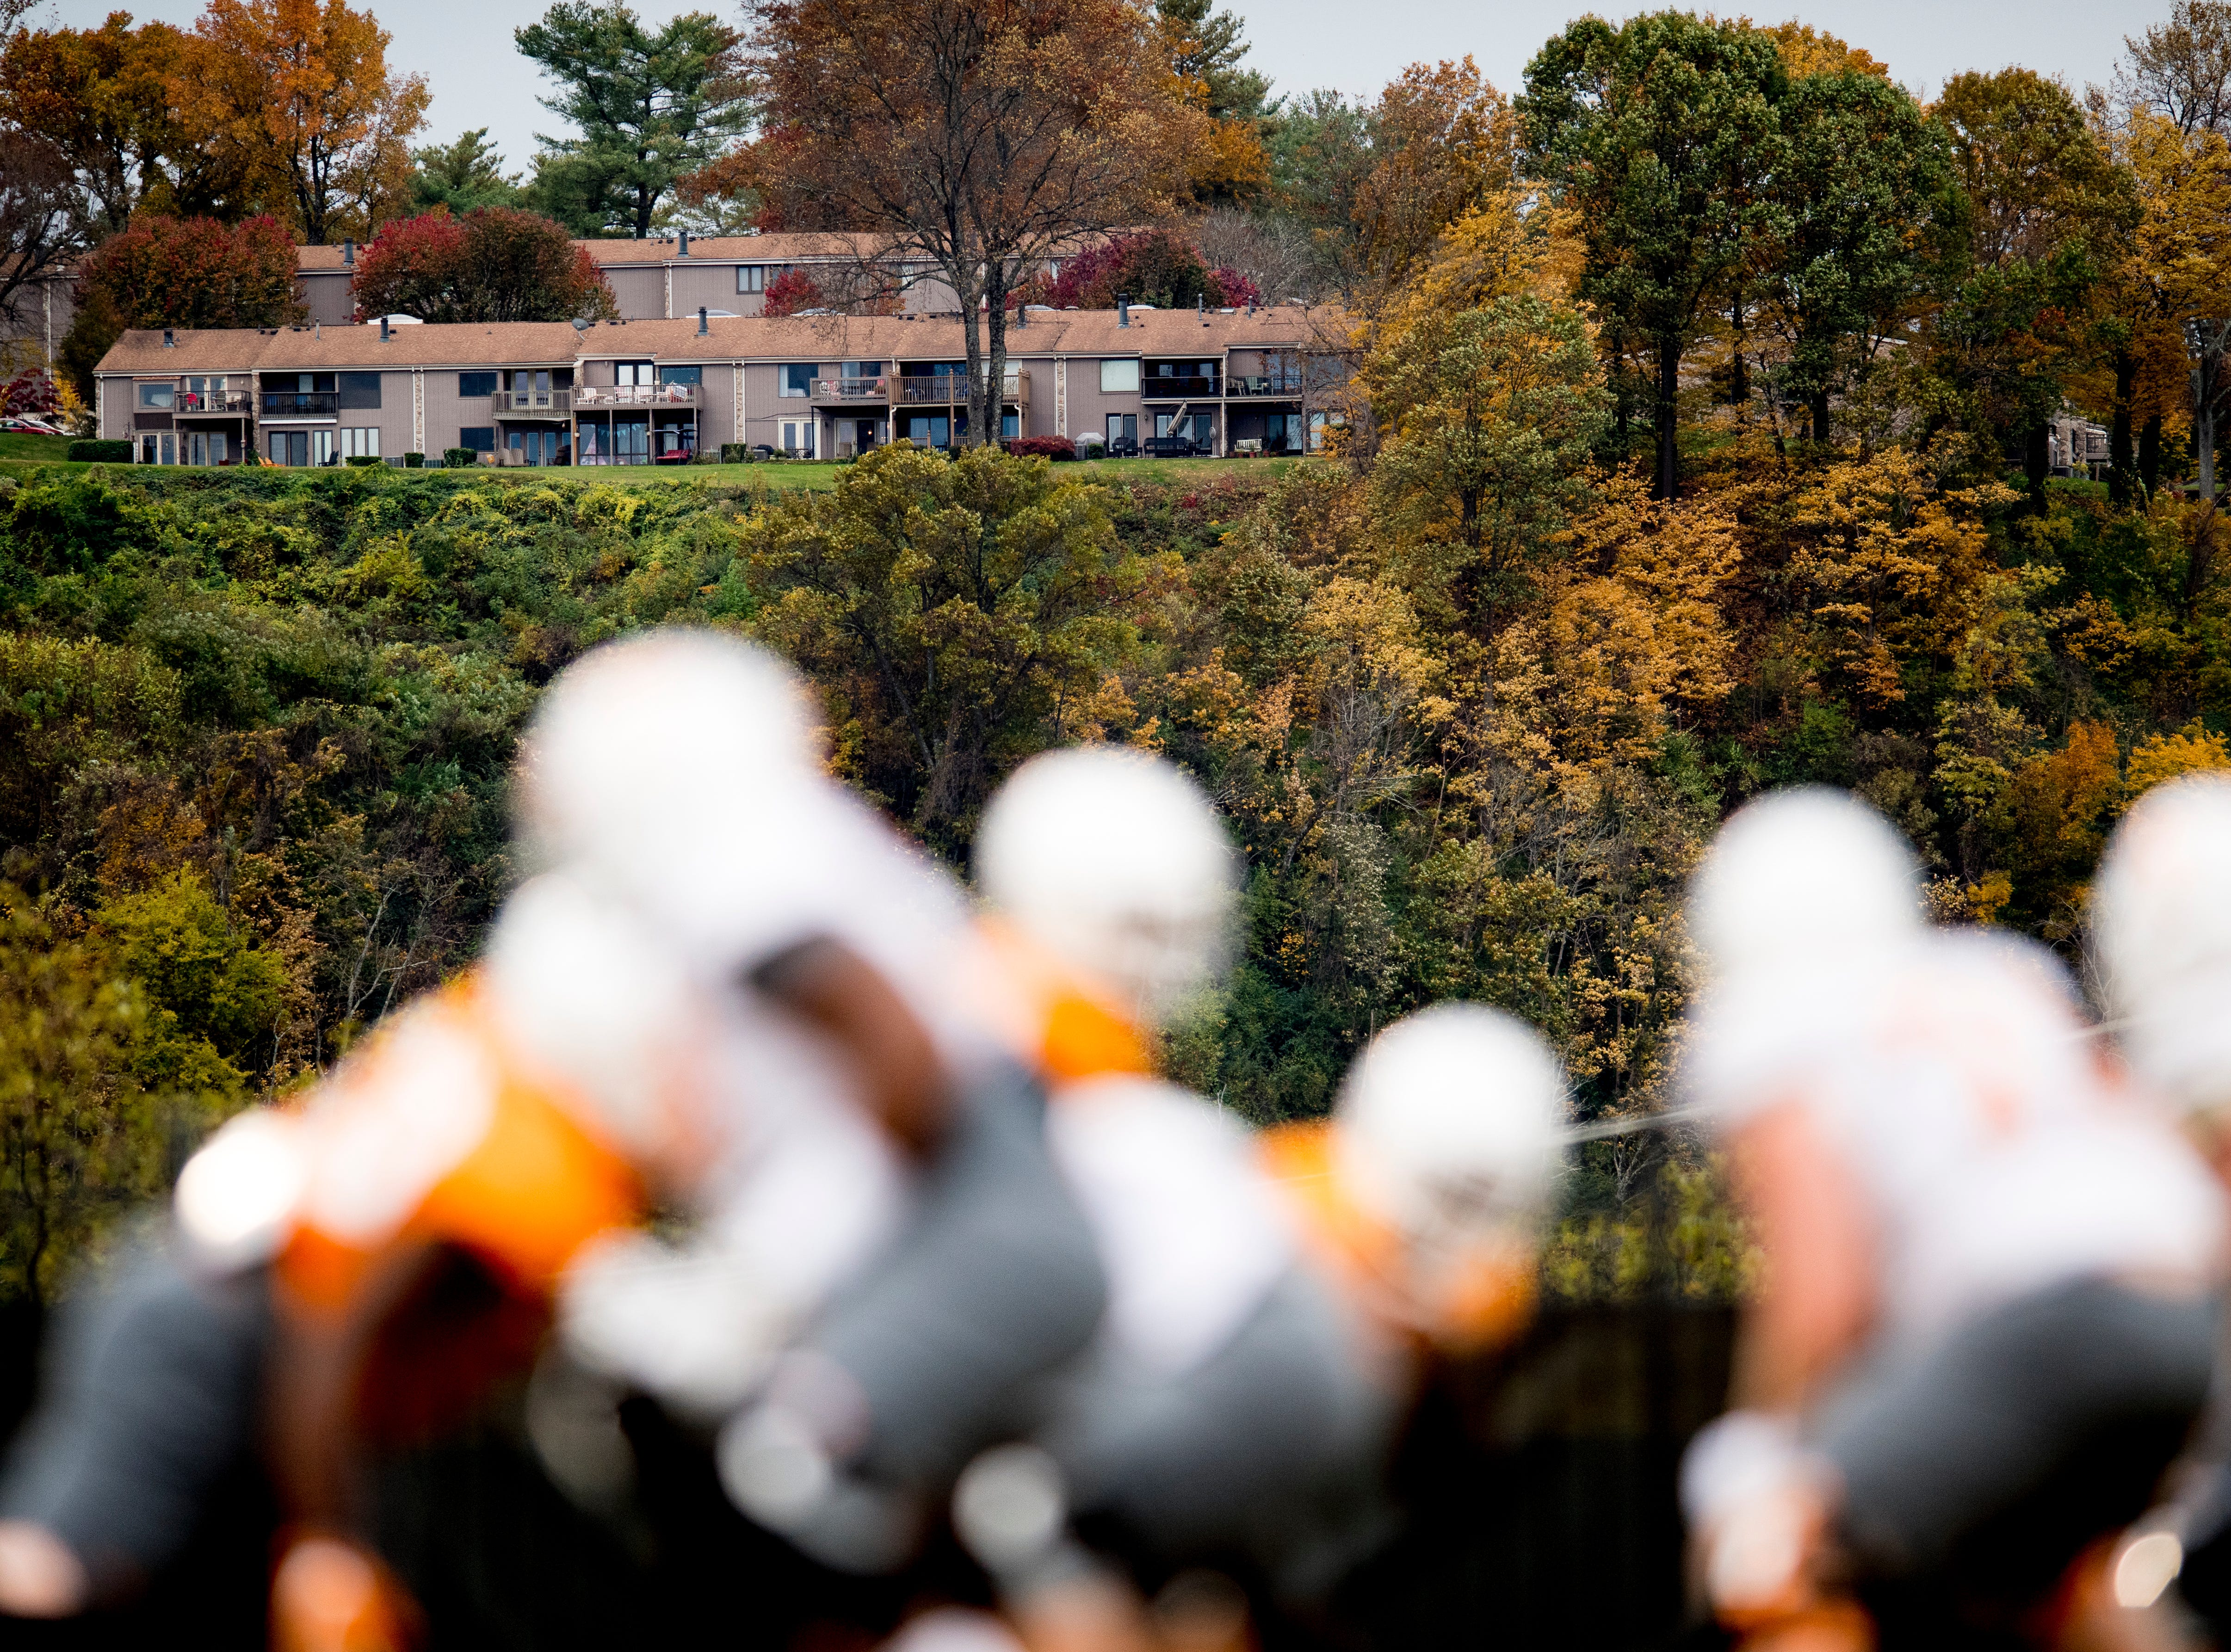 Fall colors paint the landscape during Tennessee fall football practice at Haslam Field in Knoxville, Tennessee on Wednesday, November 7, 2018.